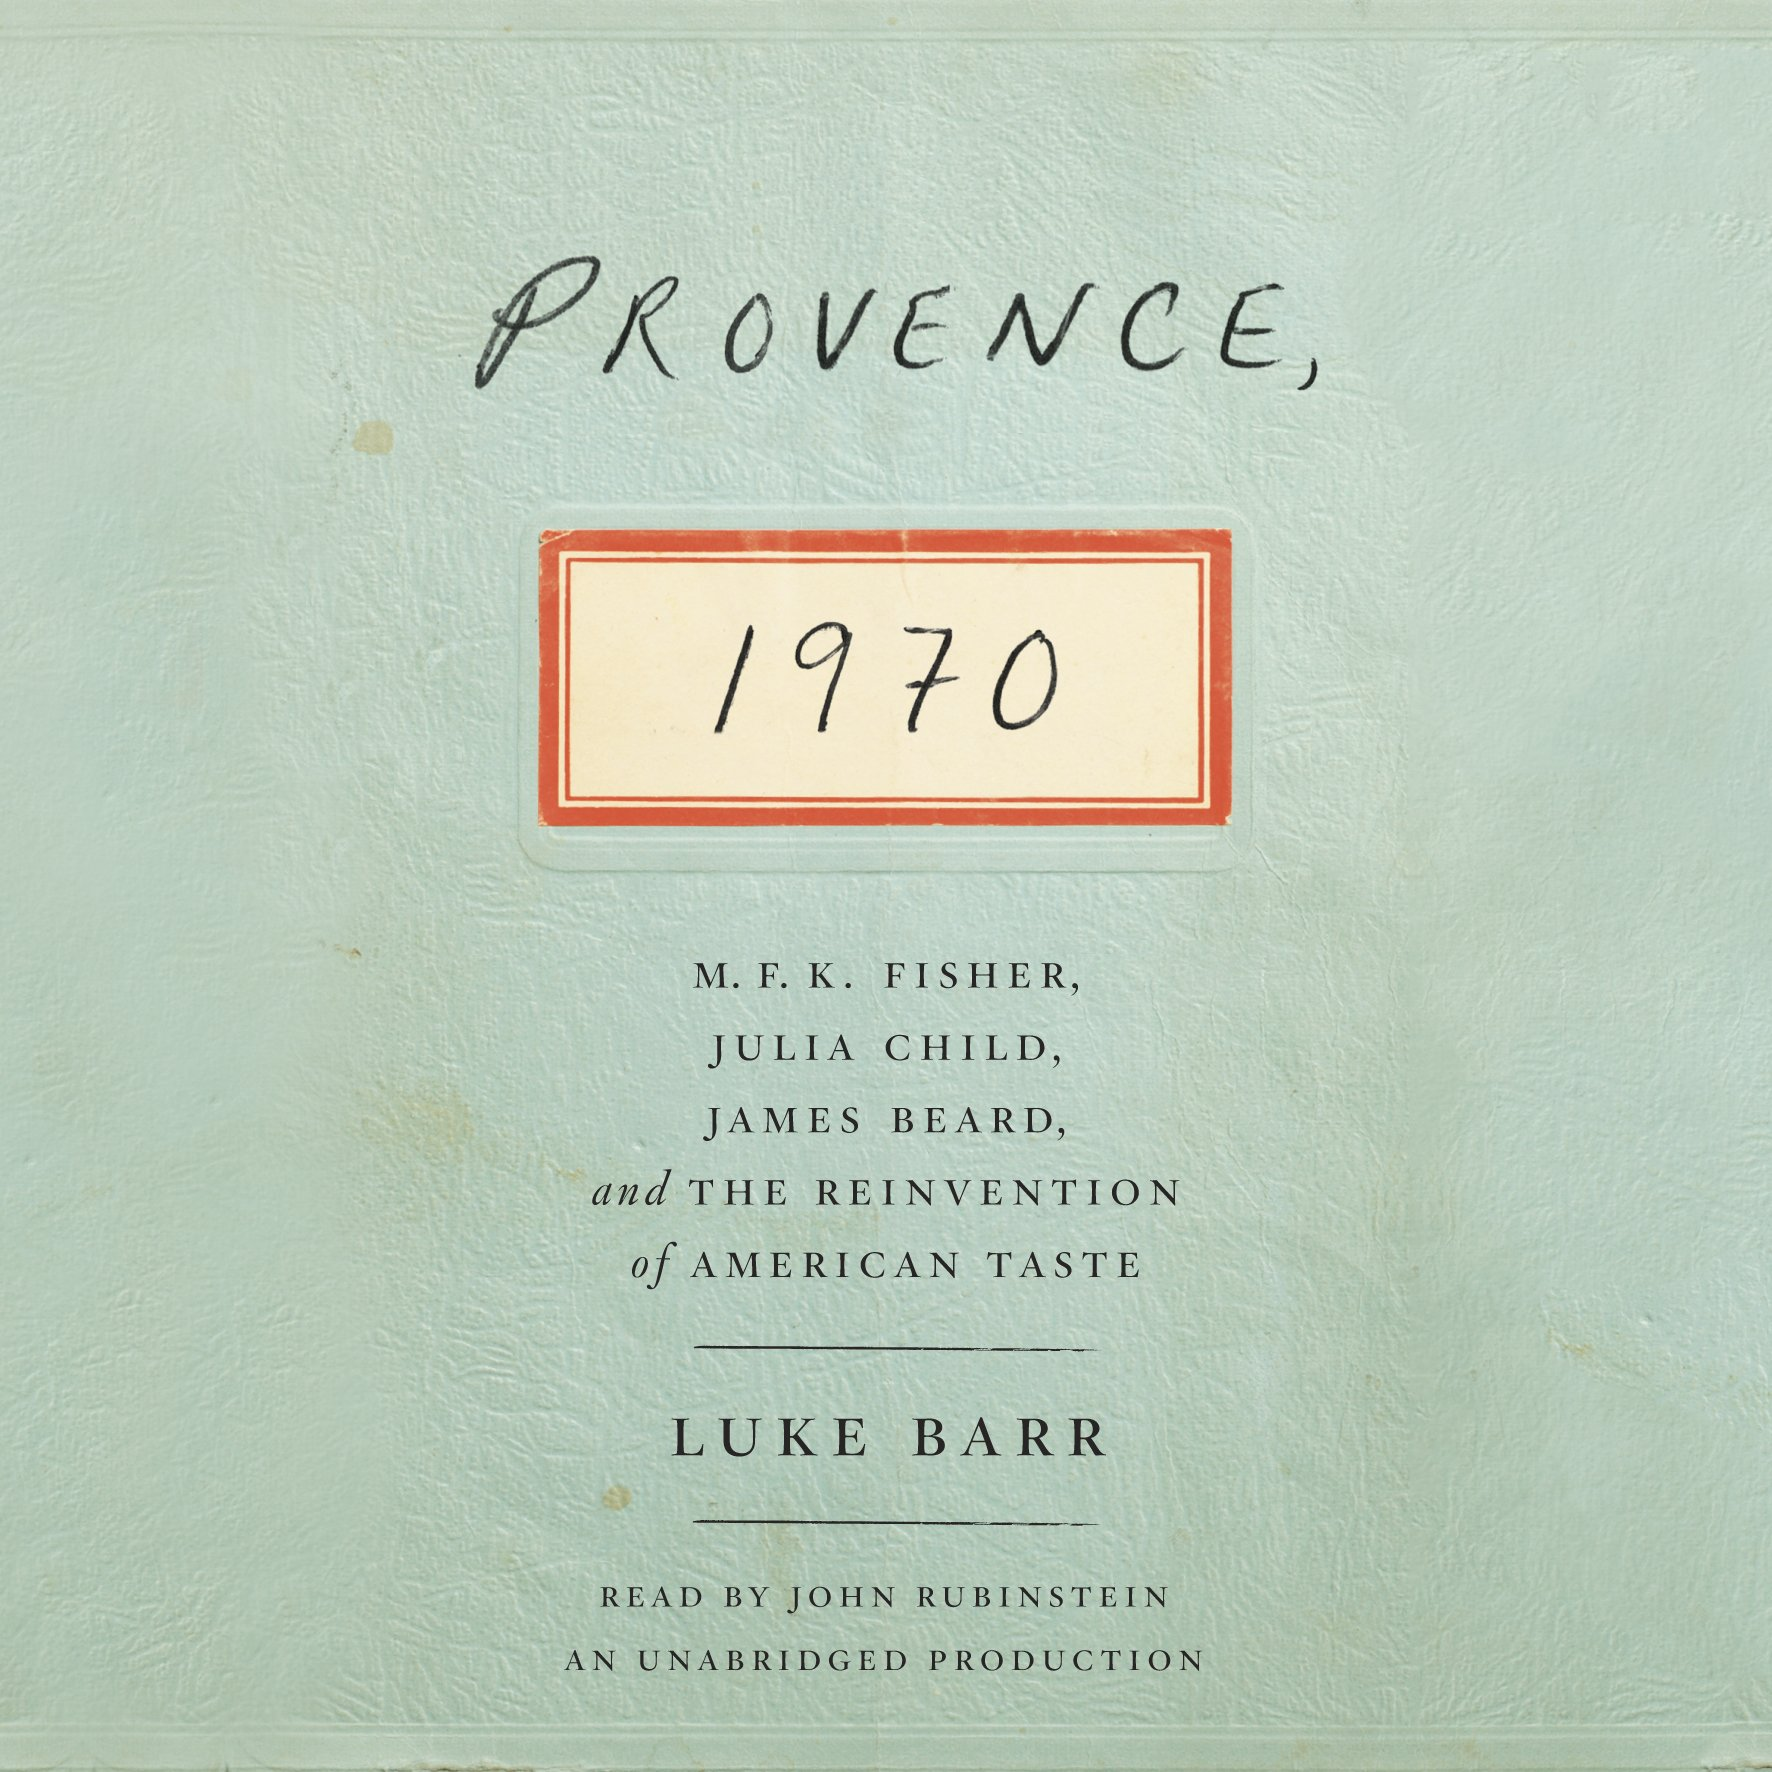 Provence, 1970: M.F.K. Fisher, Julia Child, James Beard, and the Reinvention of American Taste by Random House Audio (Image #1)